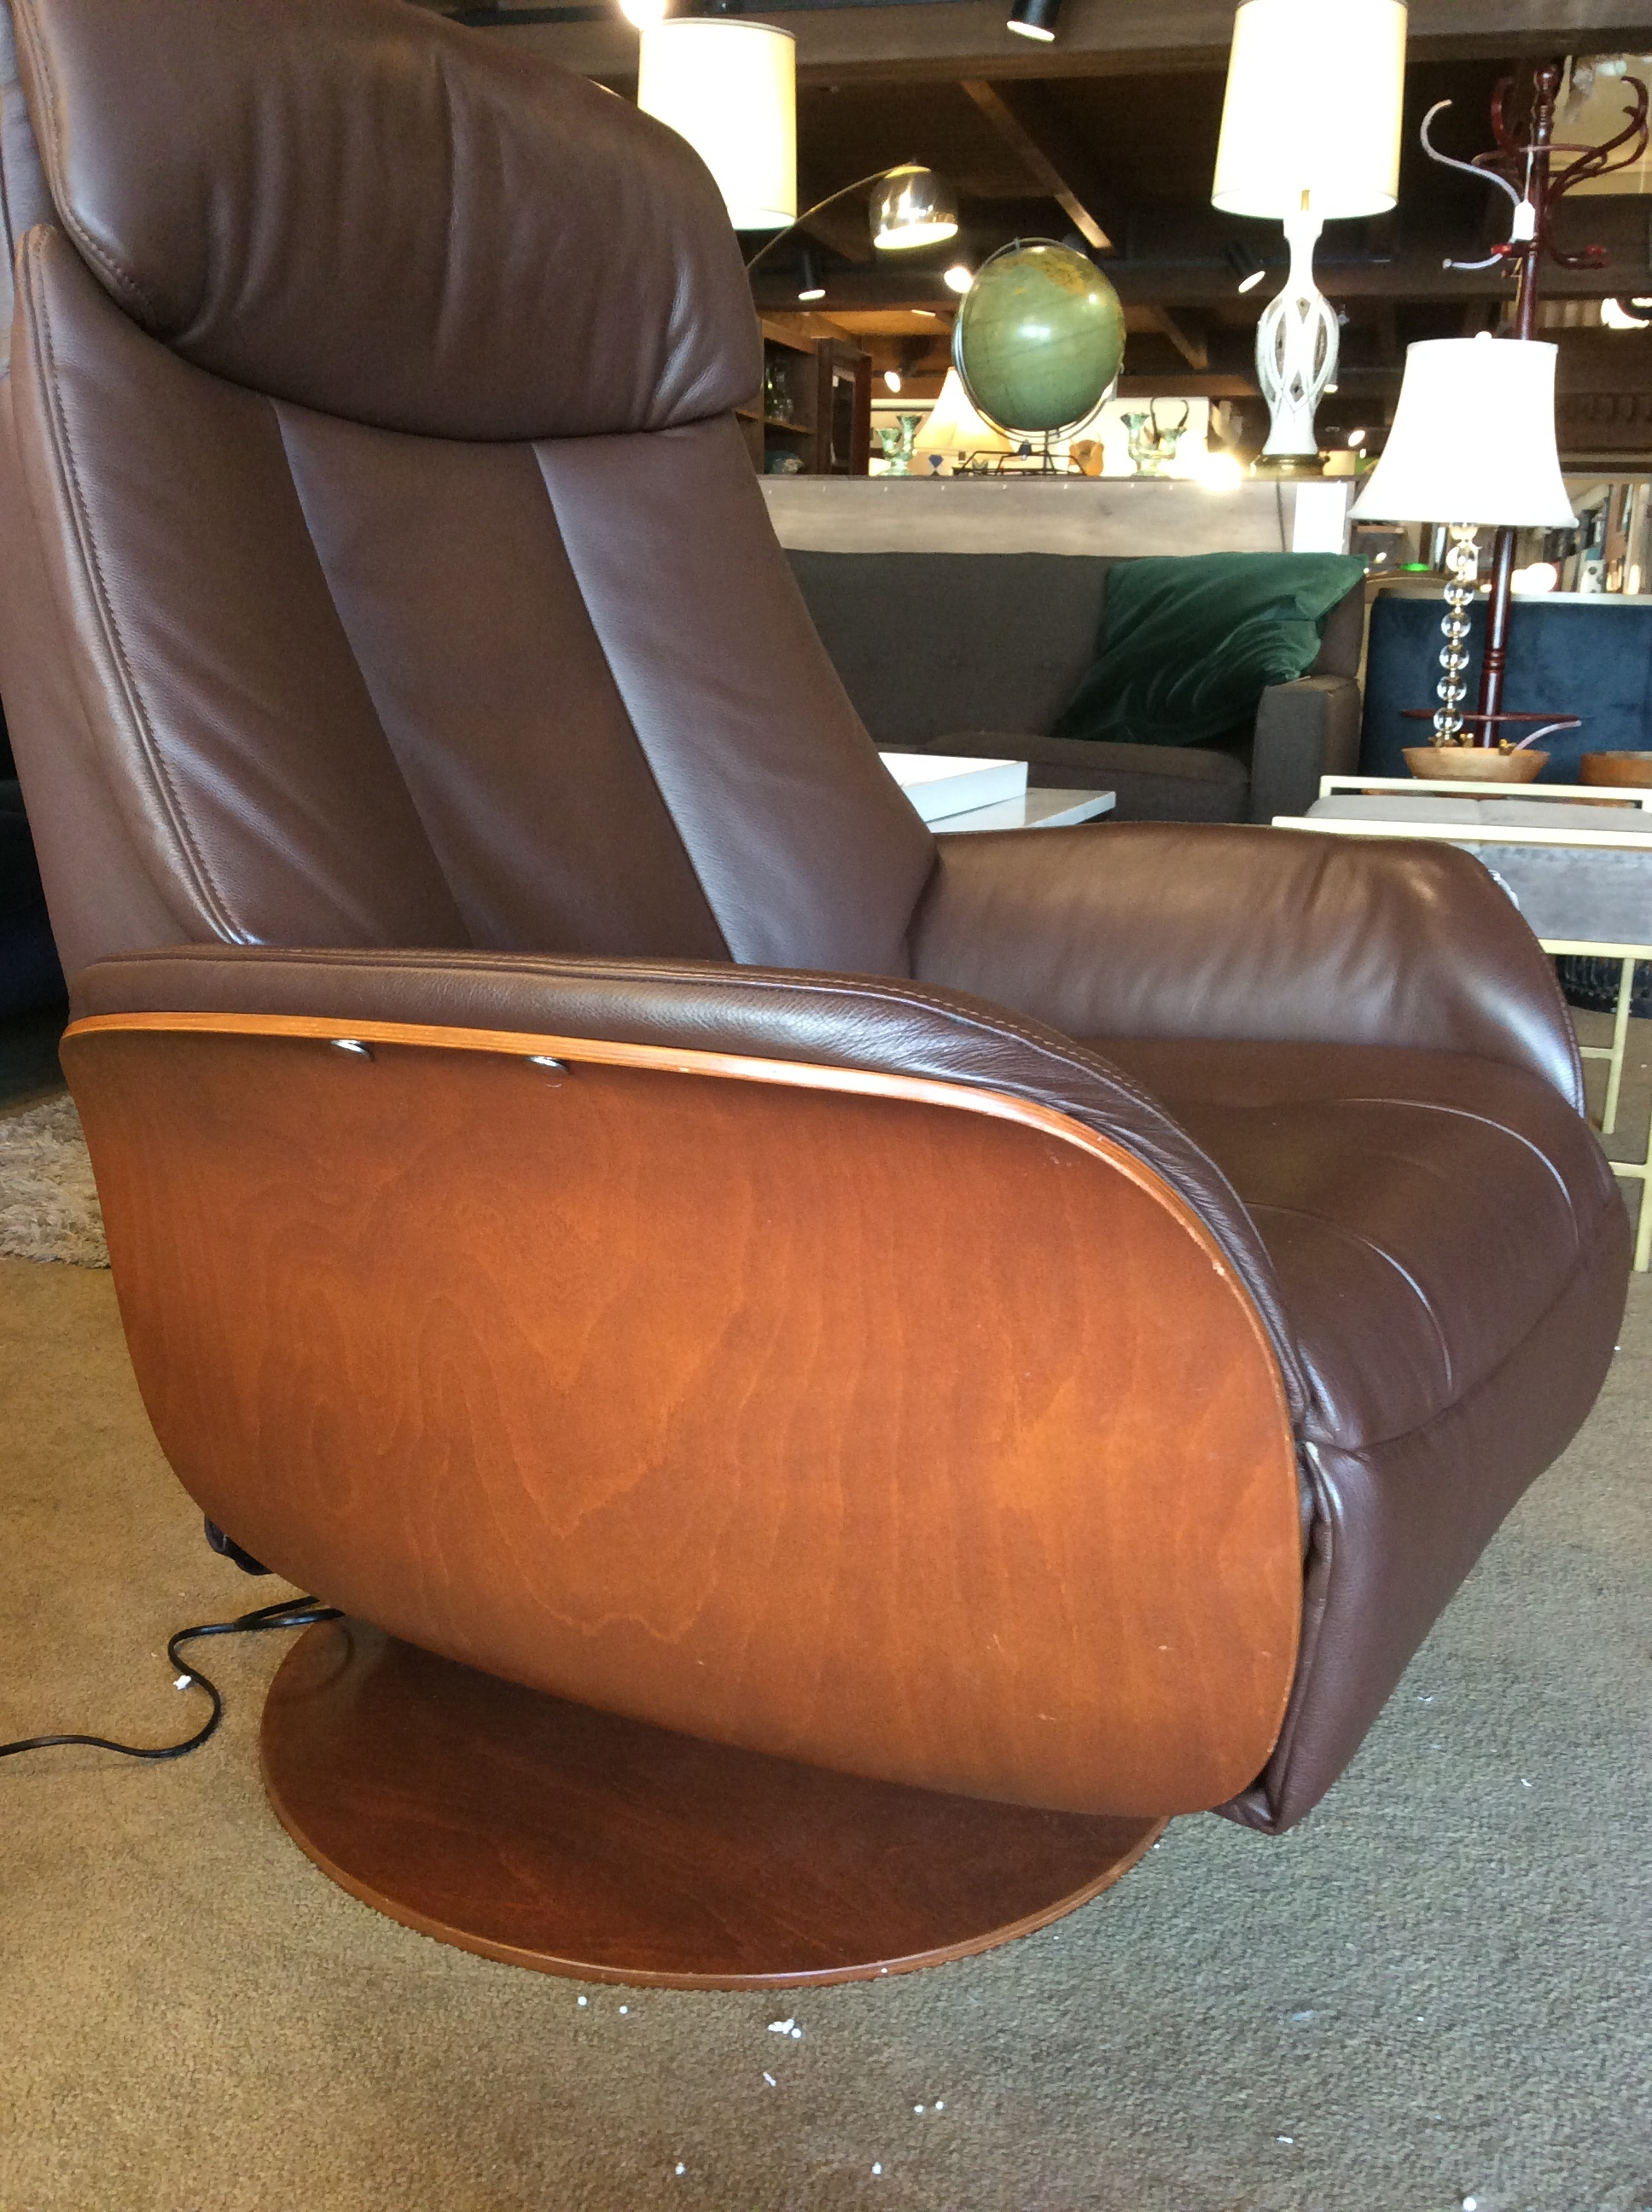 Pleasing Dania Electric Leather Recliner Sold Gmtry Best Dining Table And Chair Ideas Images Gmtryco